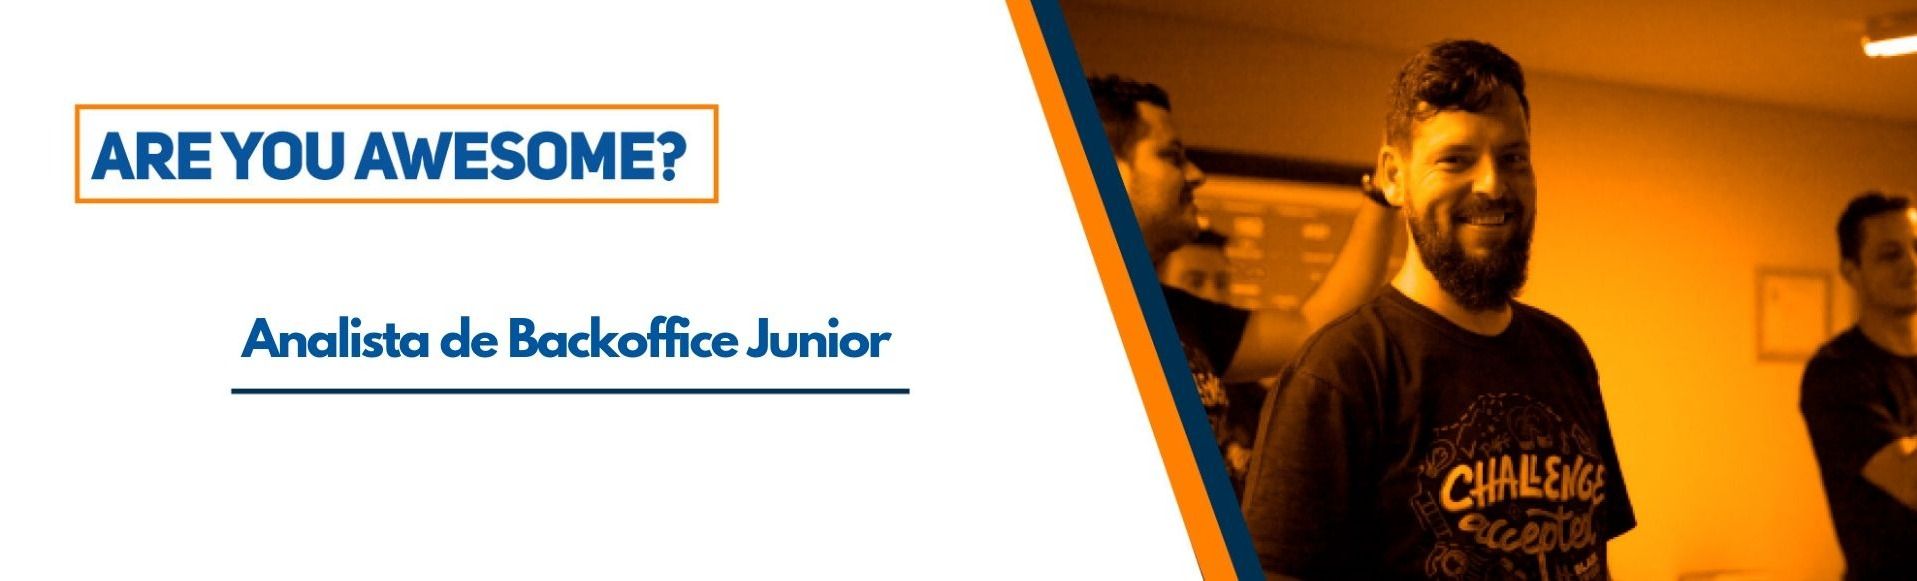 Analista de Backoffice Junior